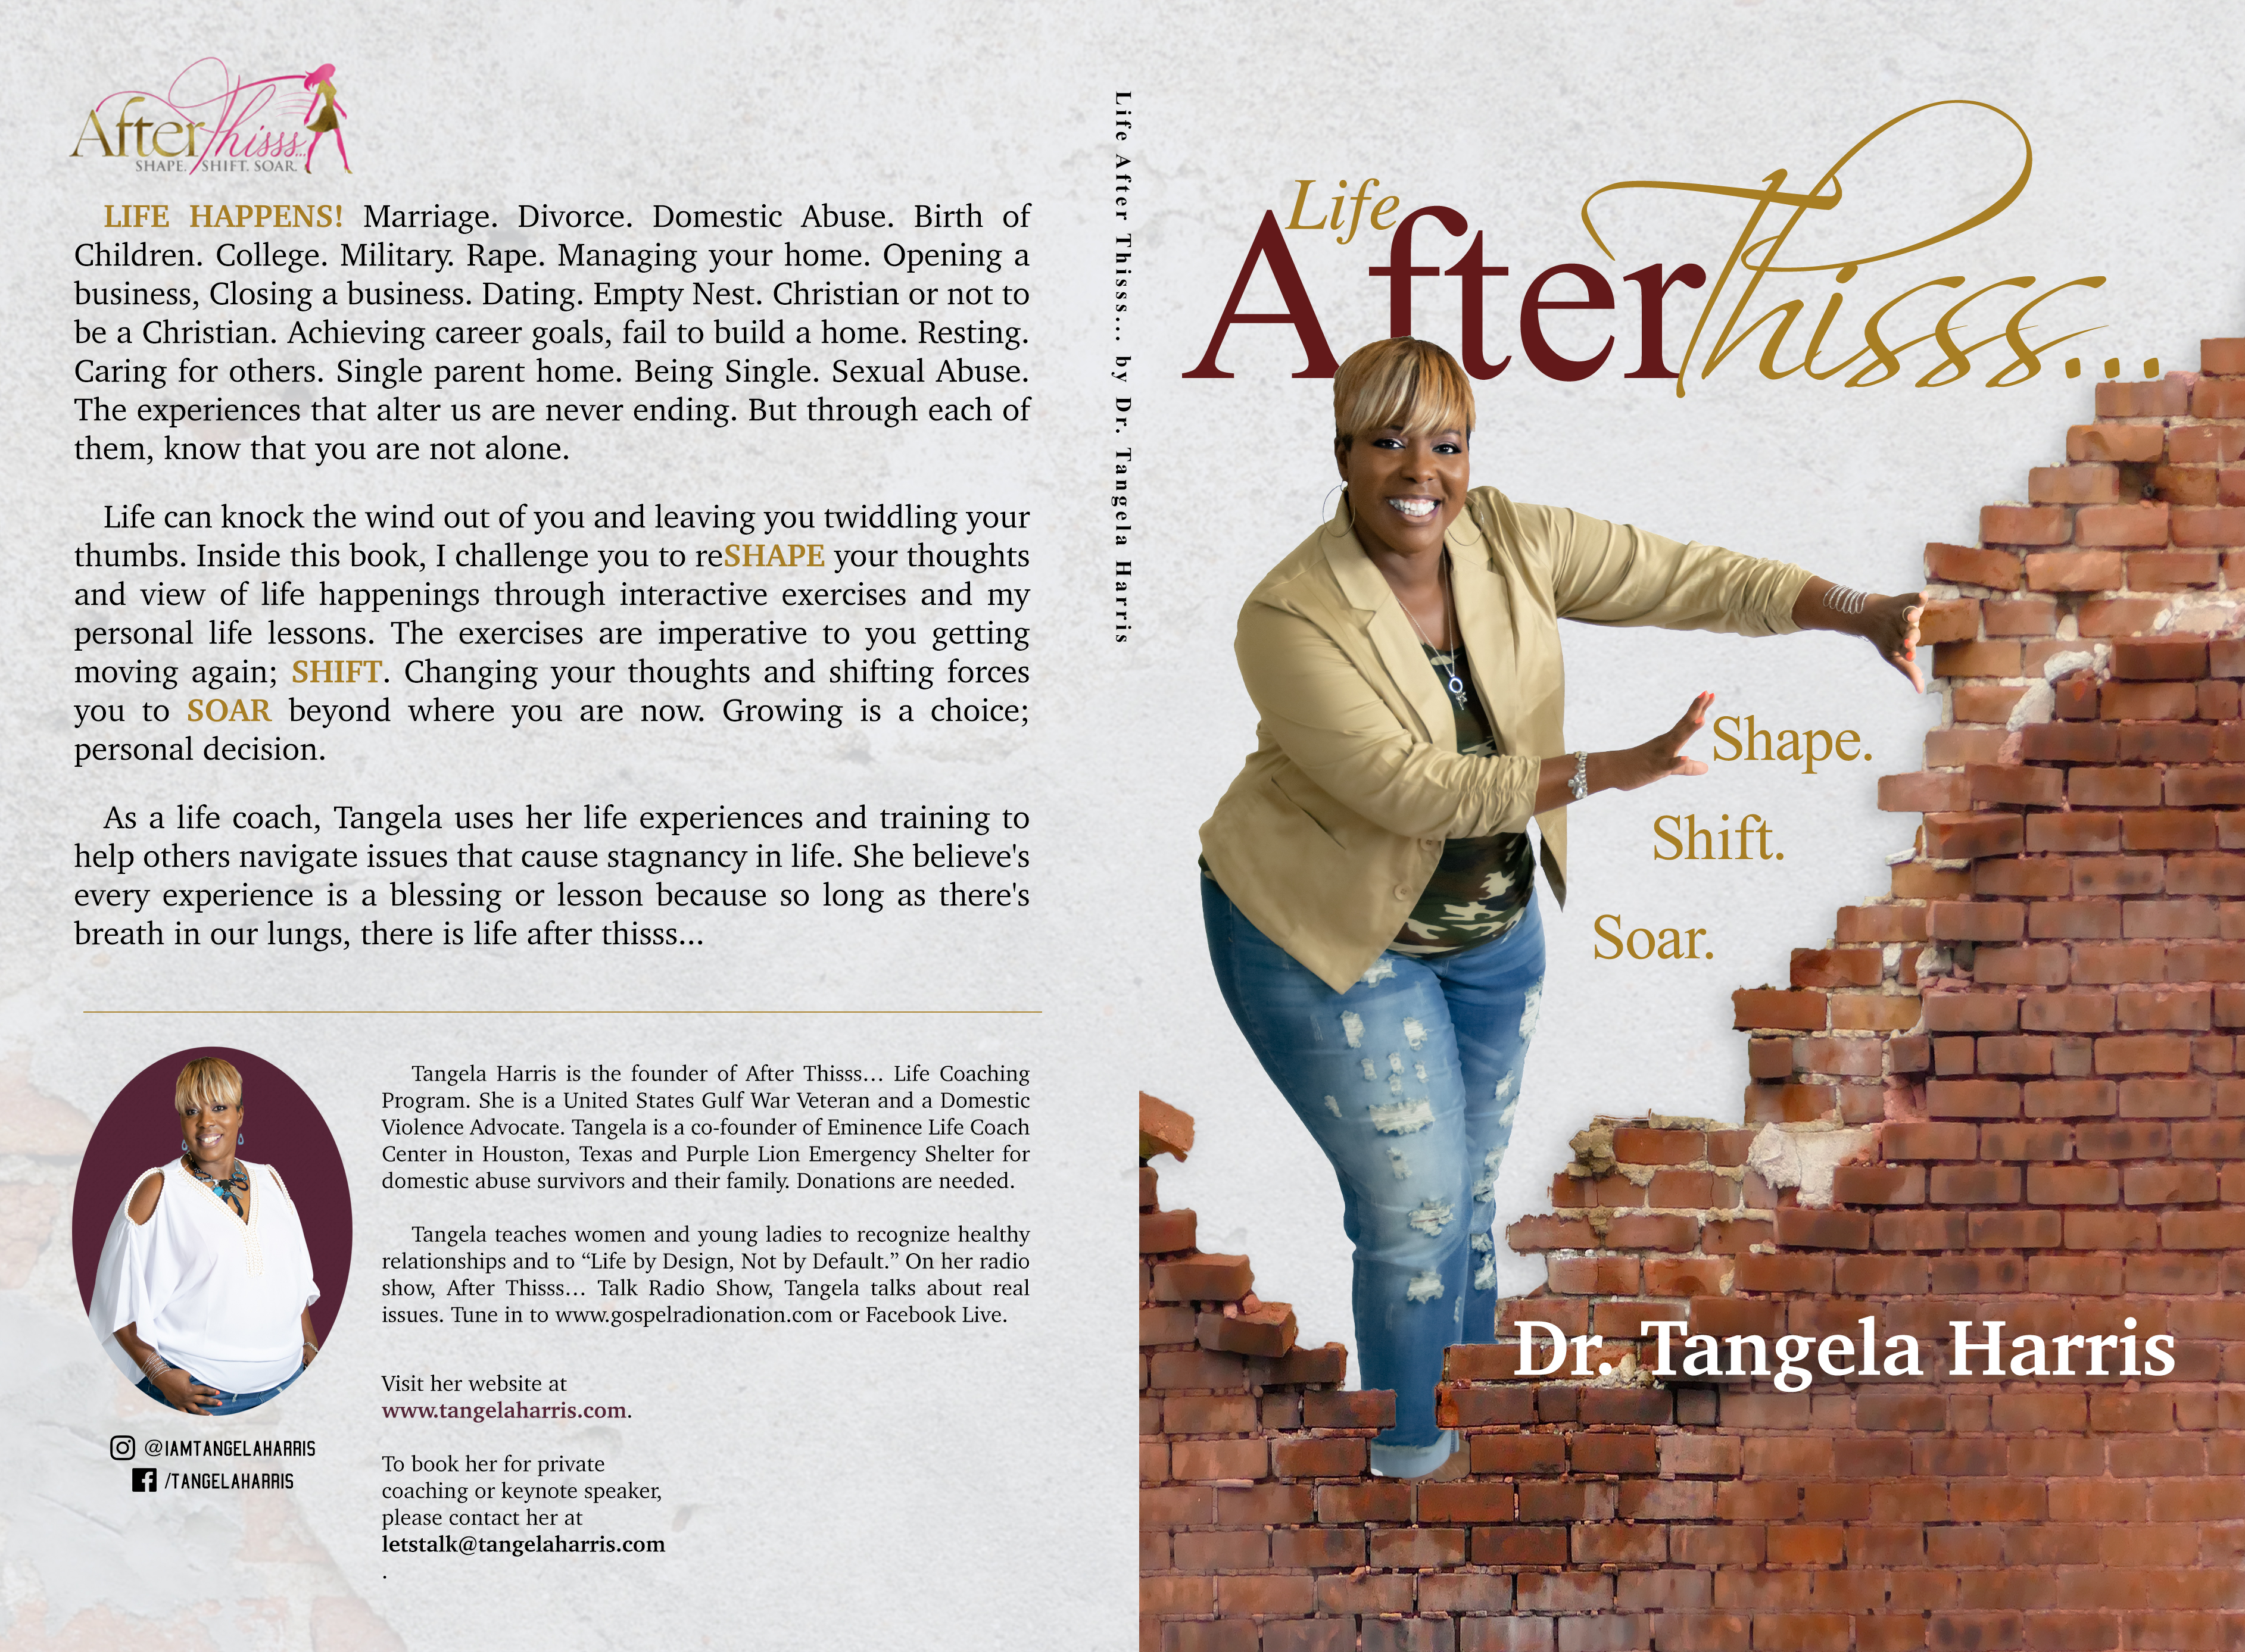 Dr Tangela Harris announces the launch of her new book titled: There is Life After Thisss…